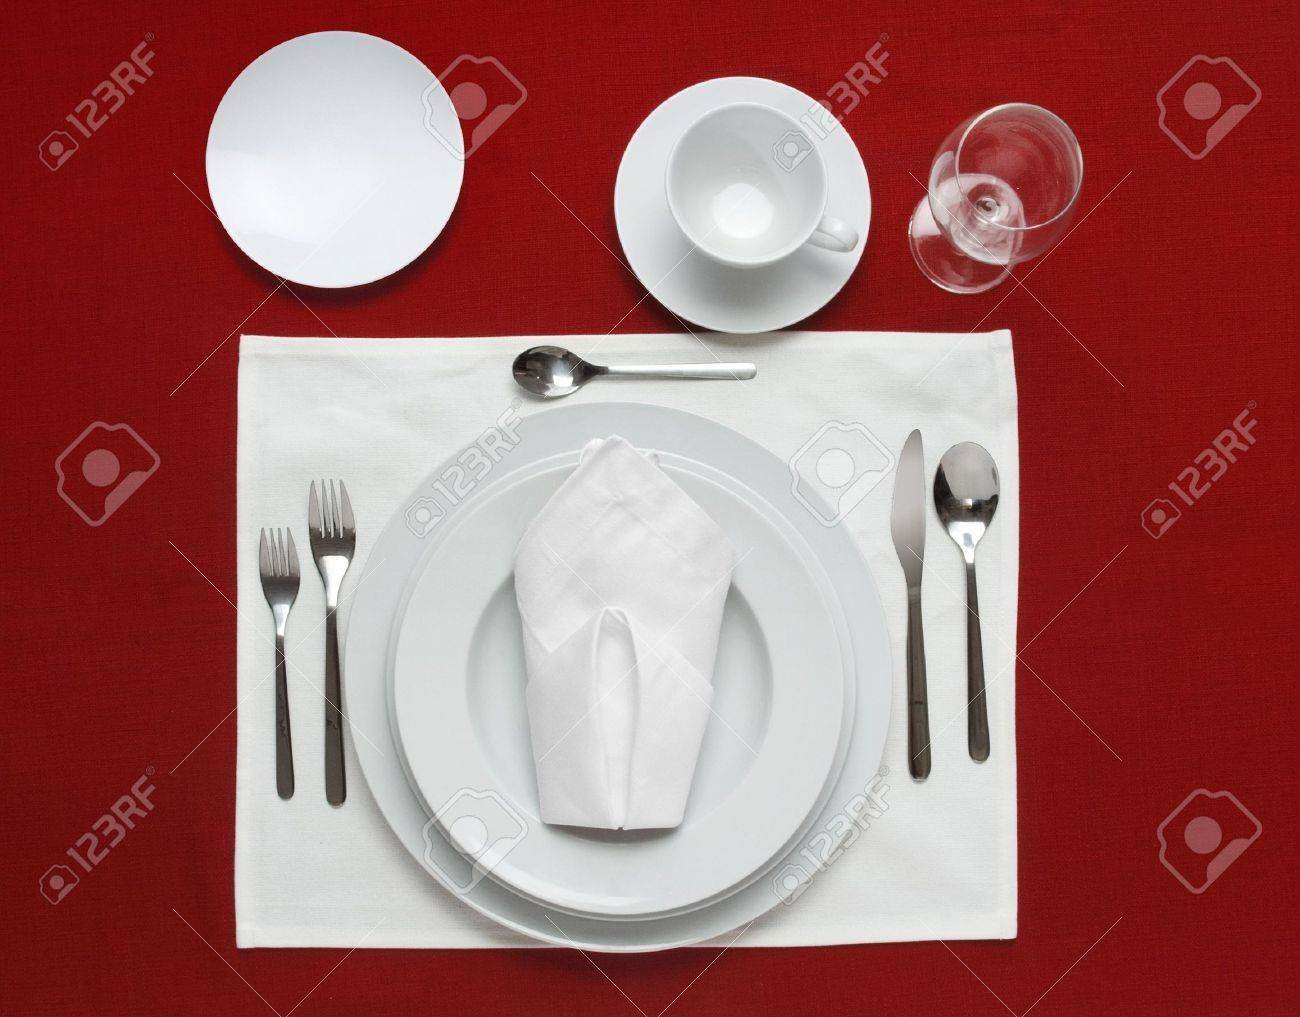 Full table place setting on a red table cloth Stock Photo - 7055366  sc 1 st  123RF.com & Full Table Place Setting On A Red Table Cloth Stock Photo Picture ...